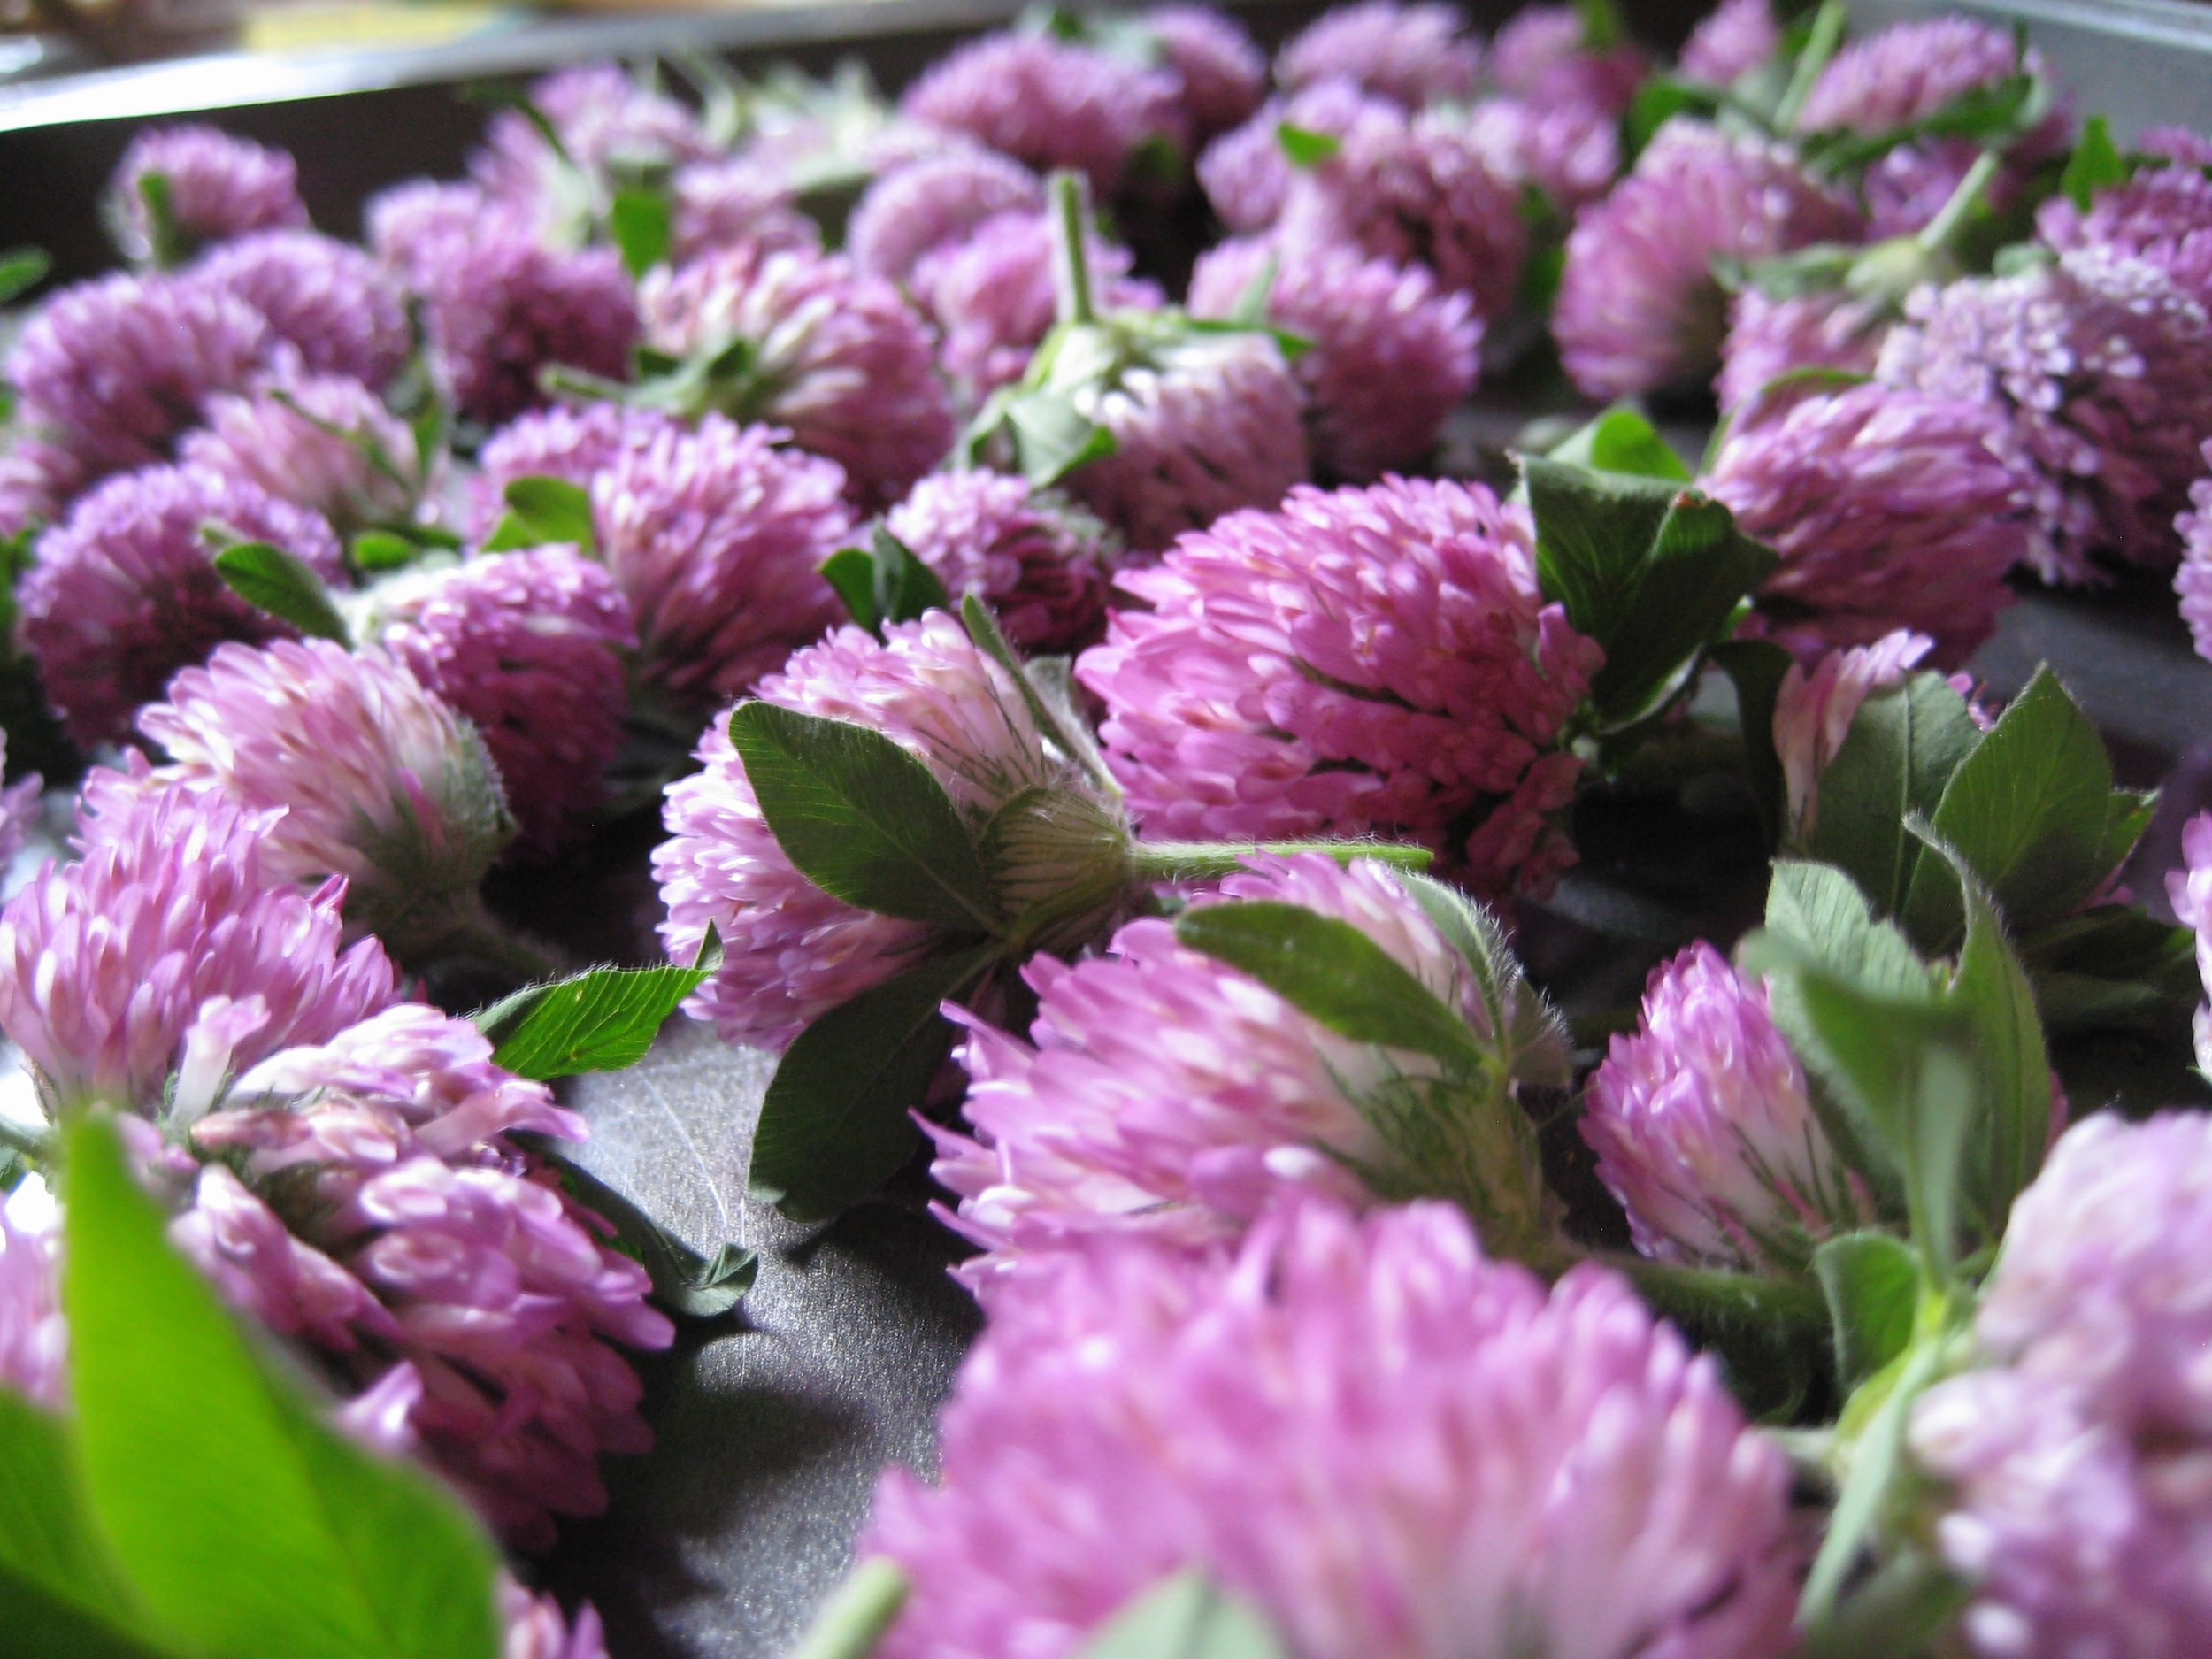 """Sarah Sorci """"Red clover is an edible flower and gentle tea to support the female reproductive system. Fredonia, NY"""""""